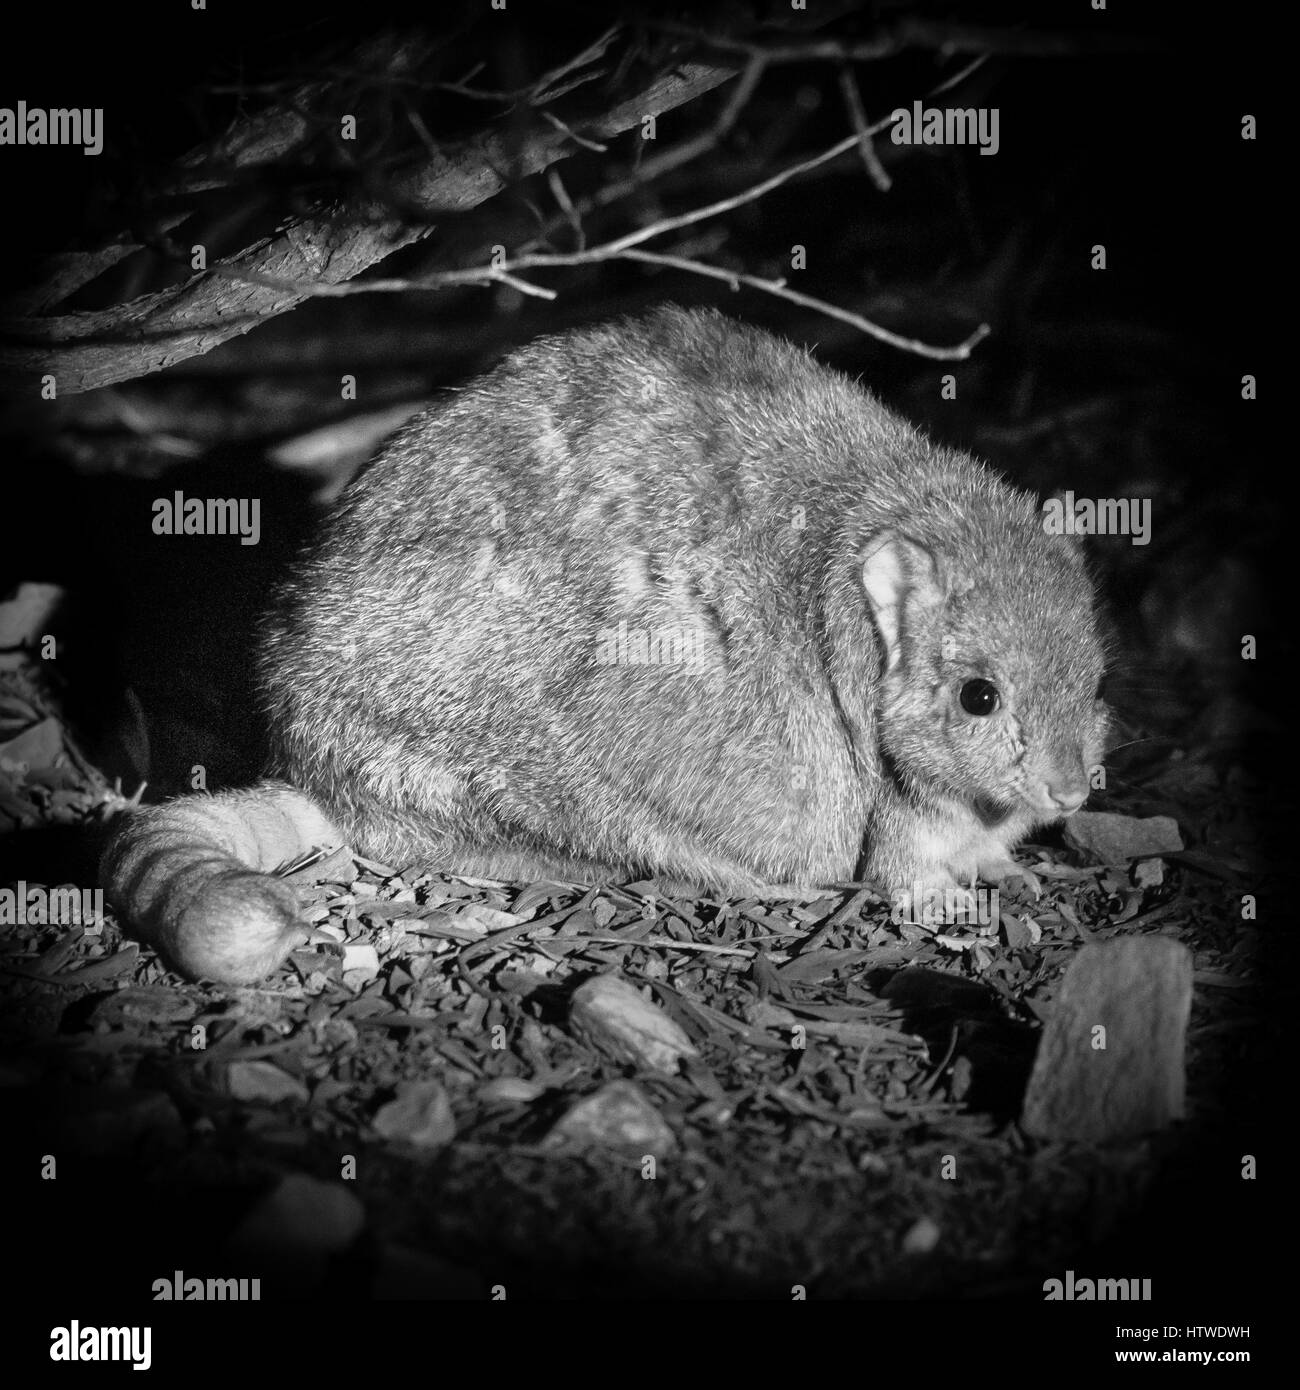 Burrowing Bettong (Bettongia lesueur) - Stock Image